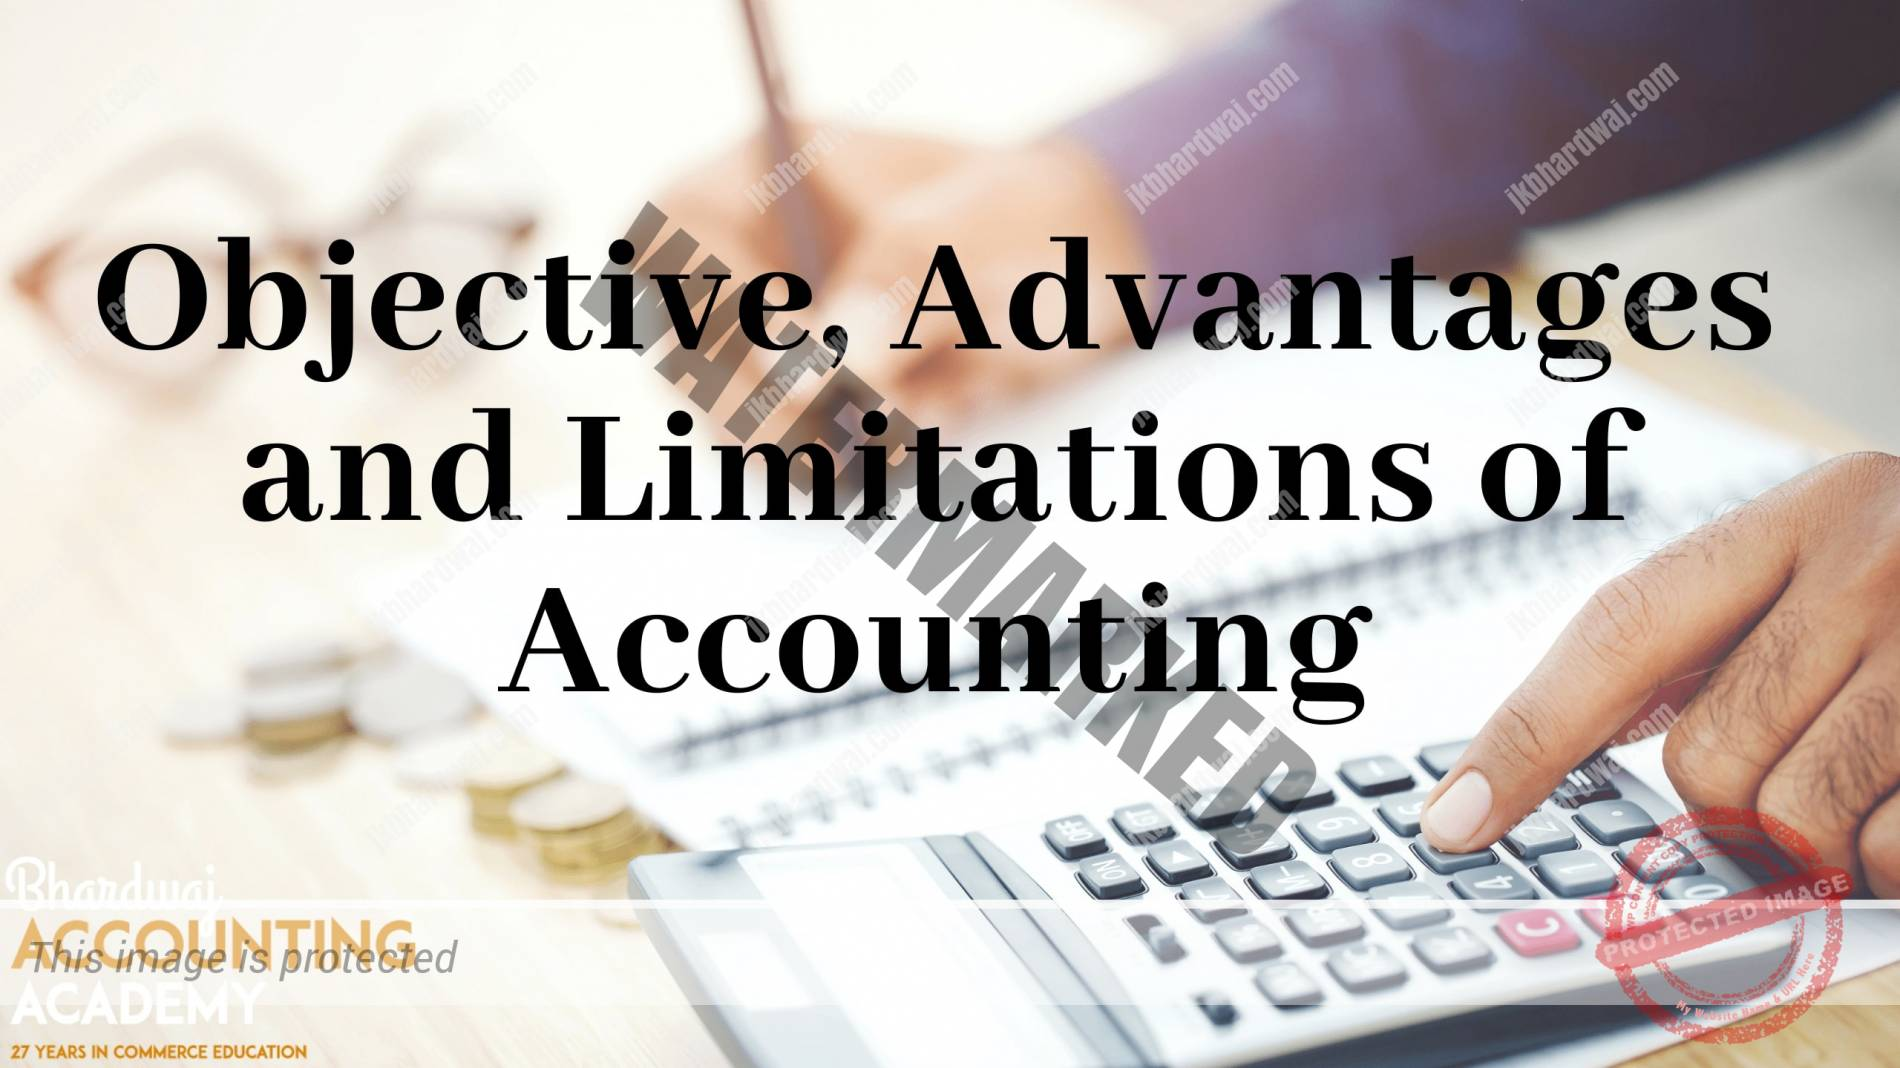 Objectives, Advantage and Limitations of Accounting